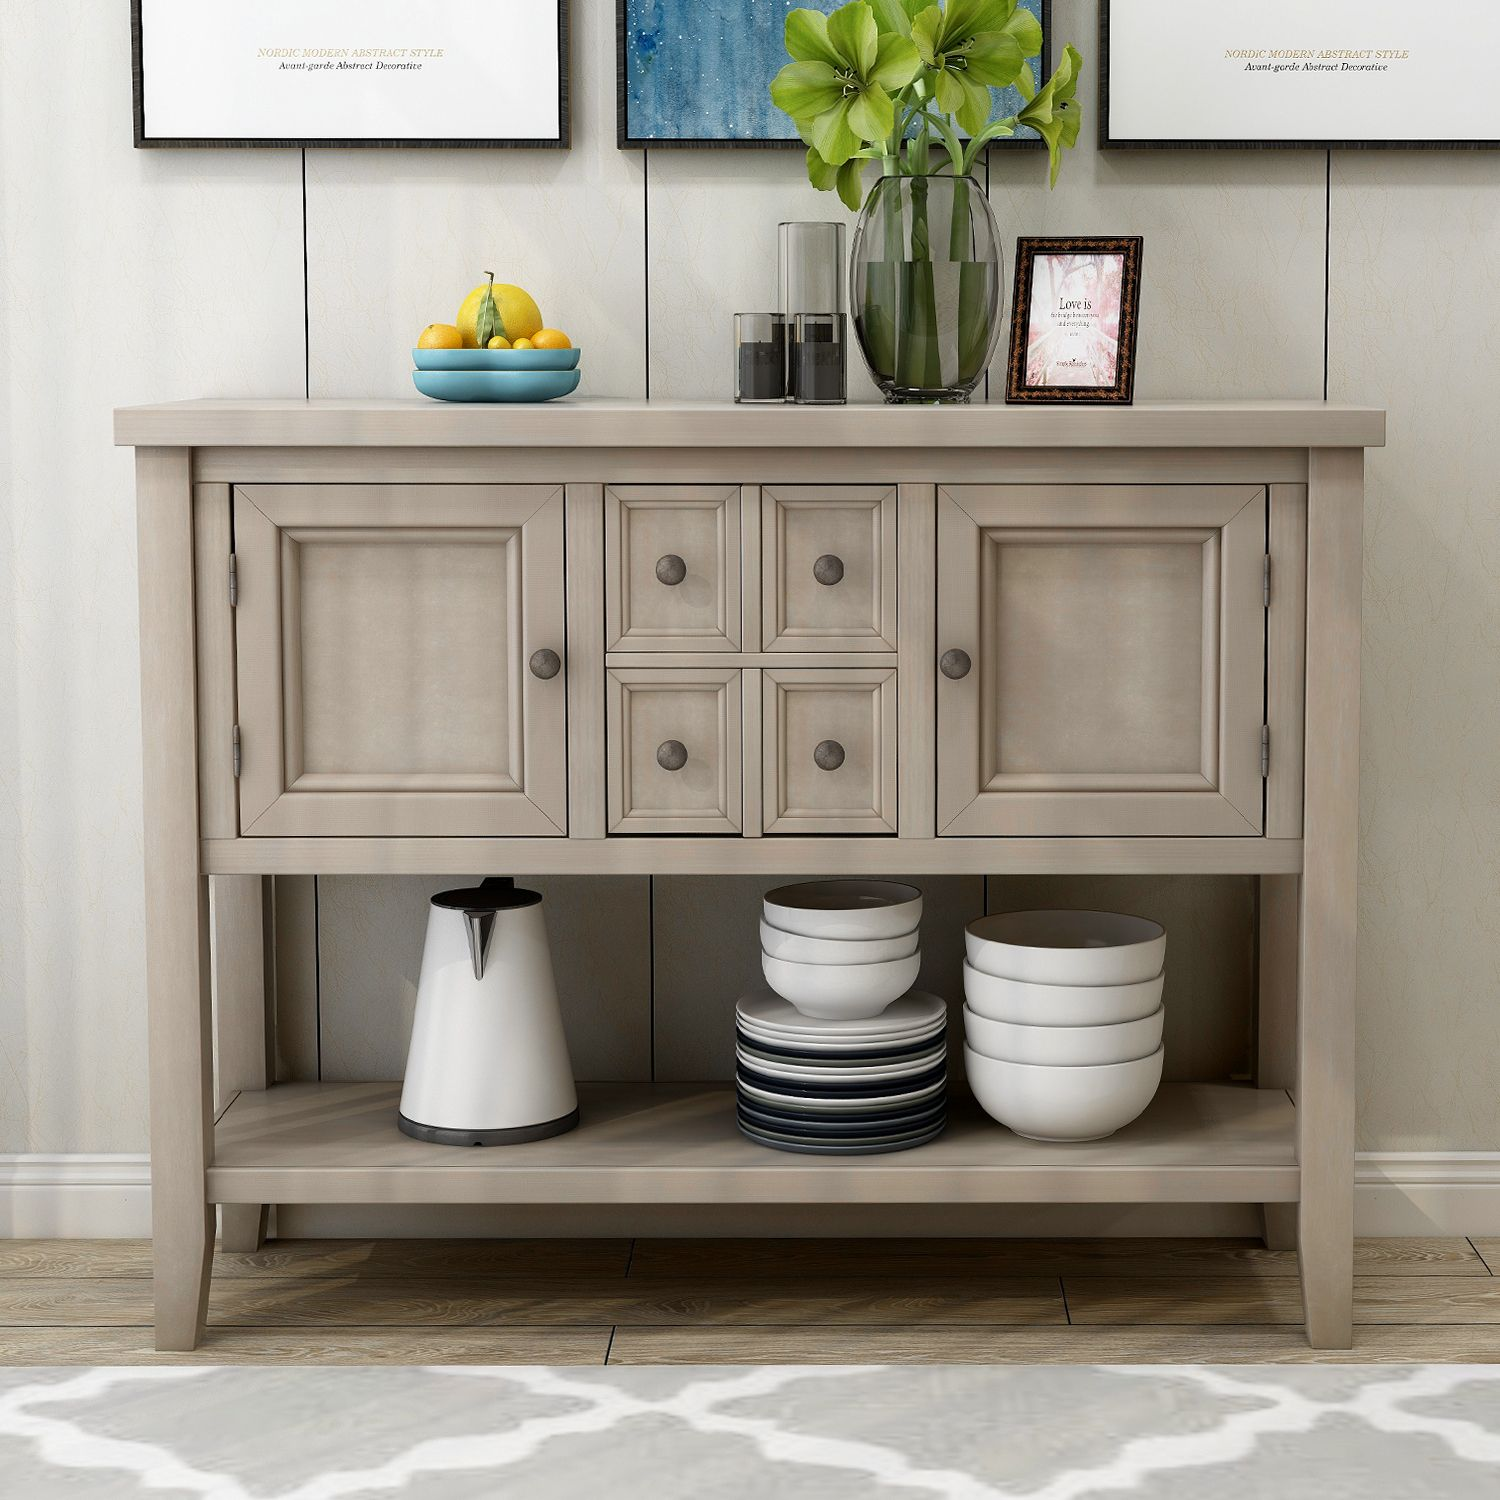 Buffet Cabinet Sideboard 46 Dining Room Console Table W 4 Storage Drawers 2 Cabinets 1 Bottom Shelf Buffet Server Cabinet Kitchen Console Table Home Furn Sideboard Console Table Dining Room Console Sideboard Console